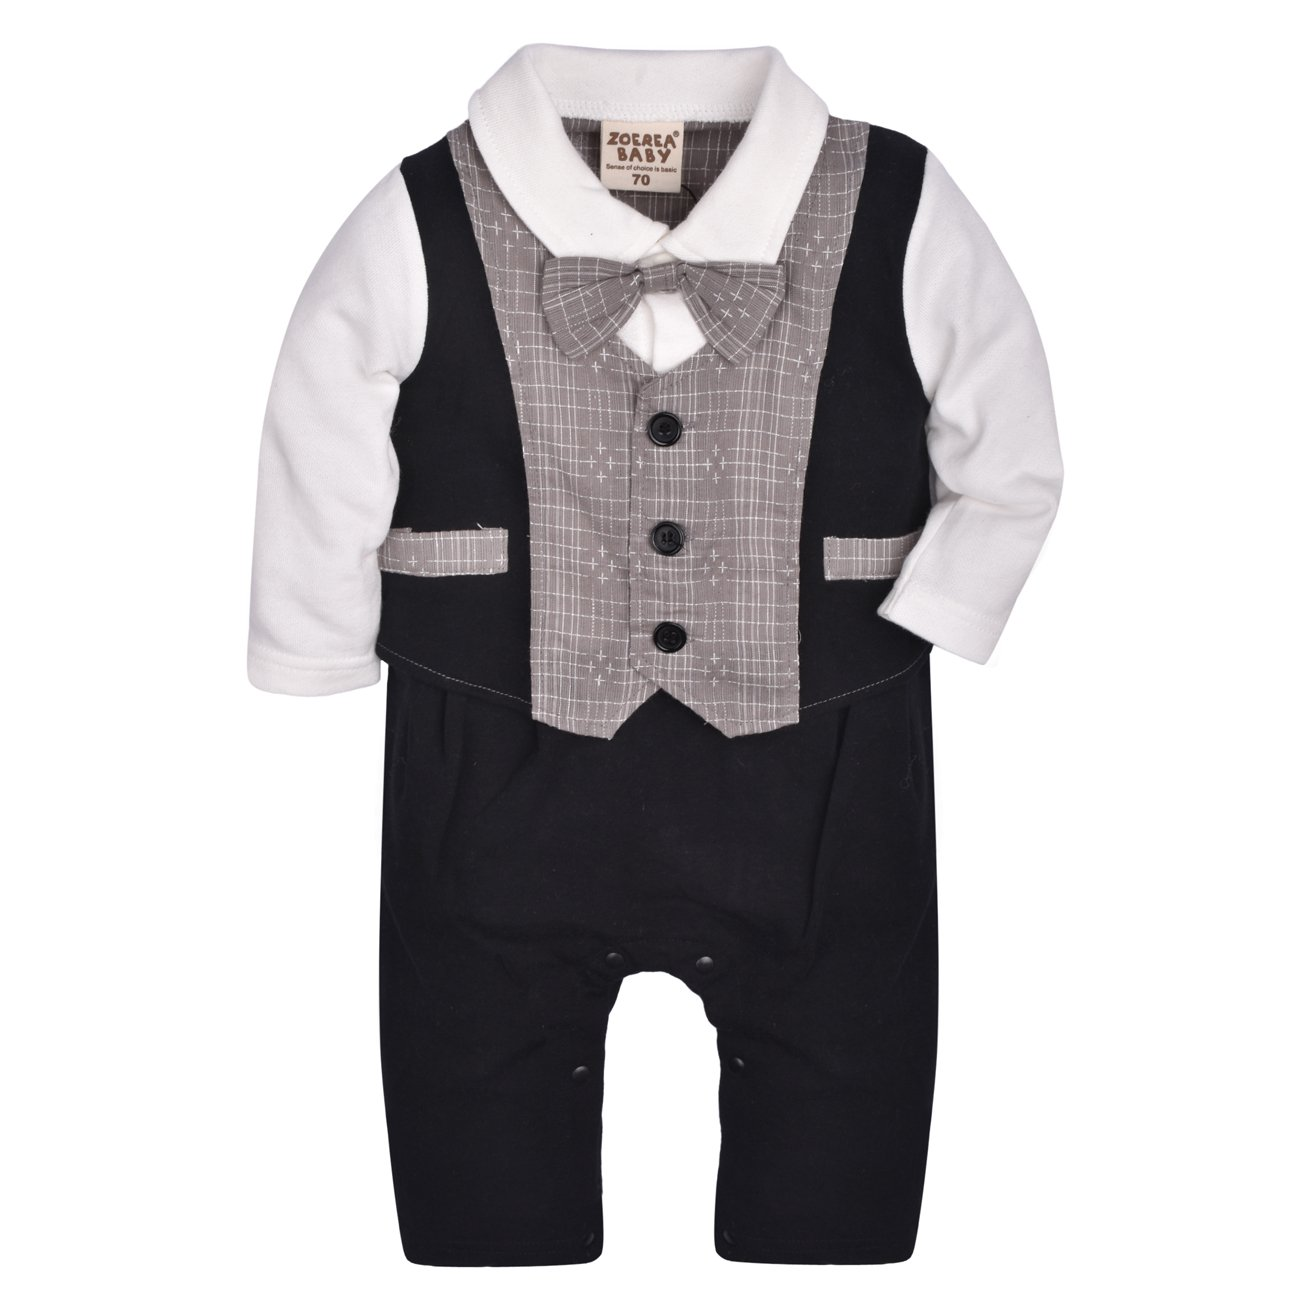 Baby one piece romper suit new cotton short//long sleeve OASIS